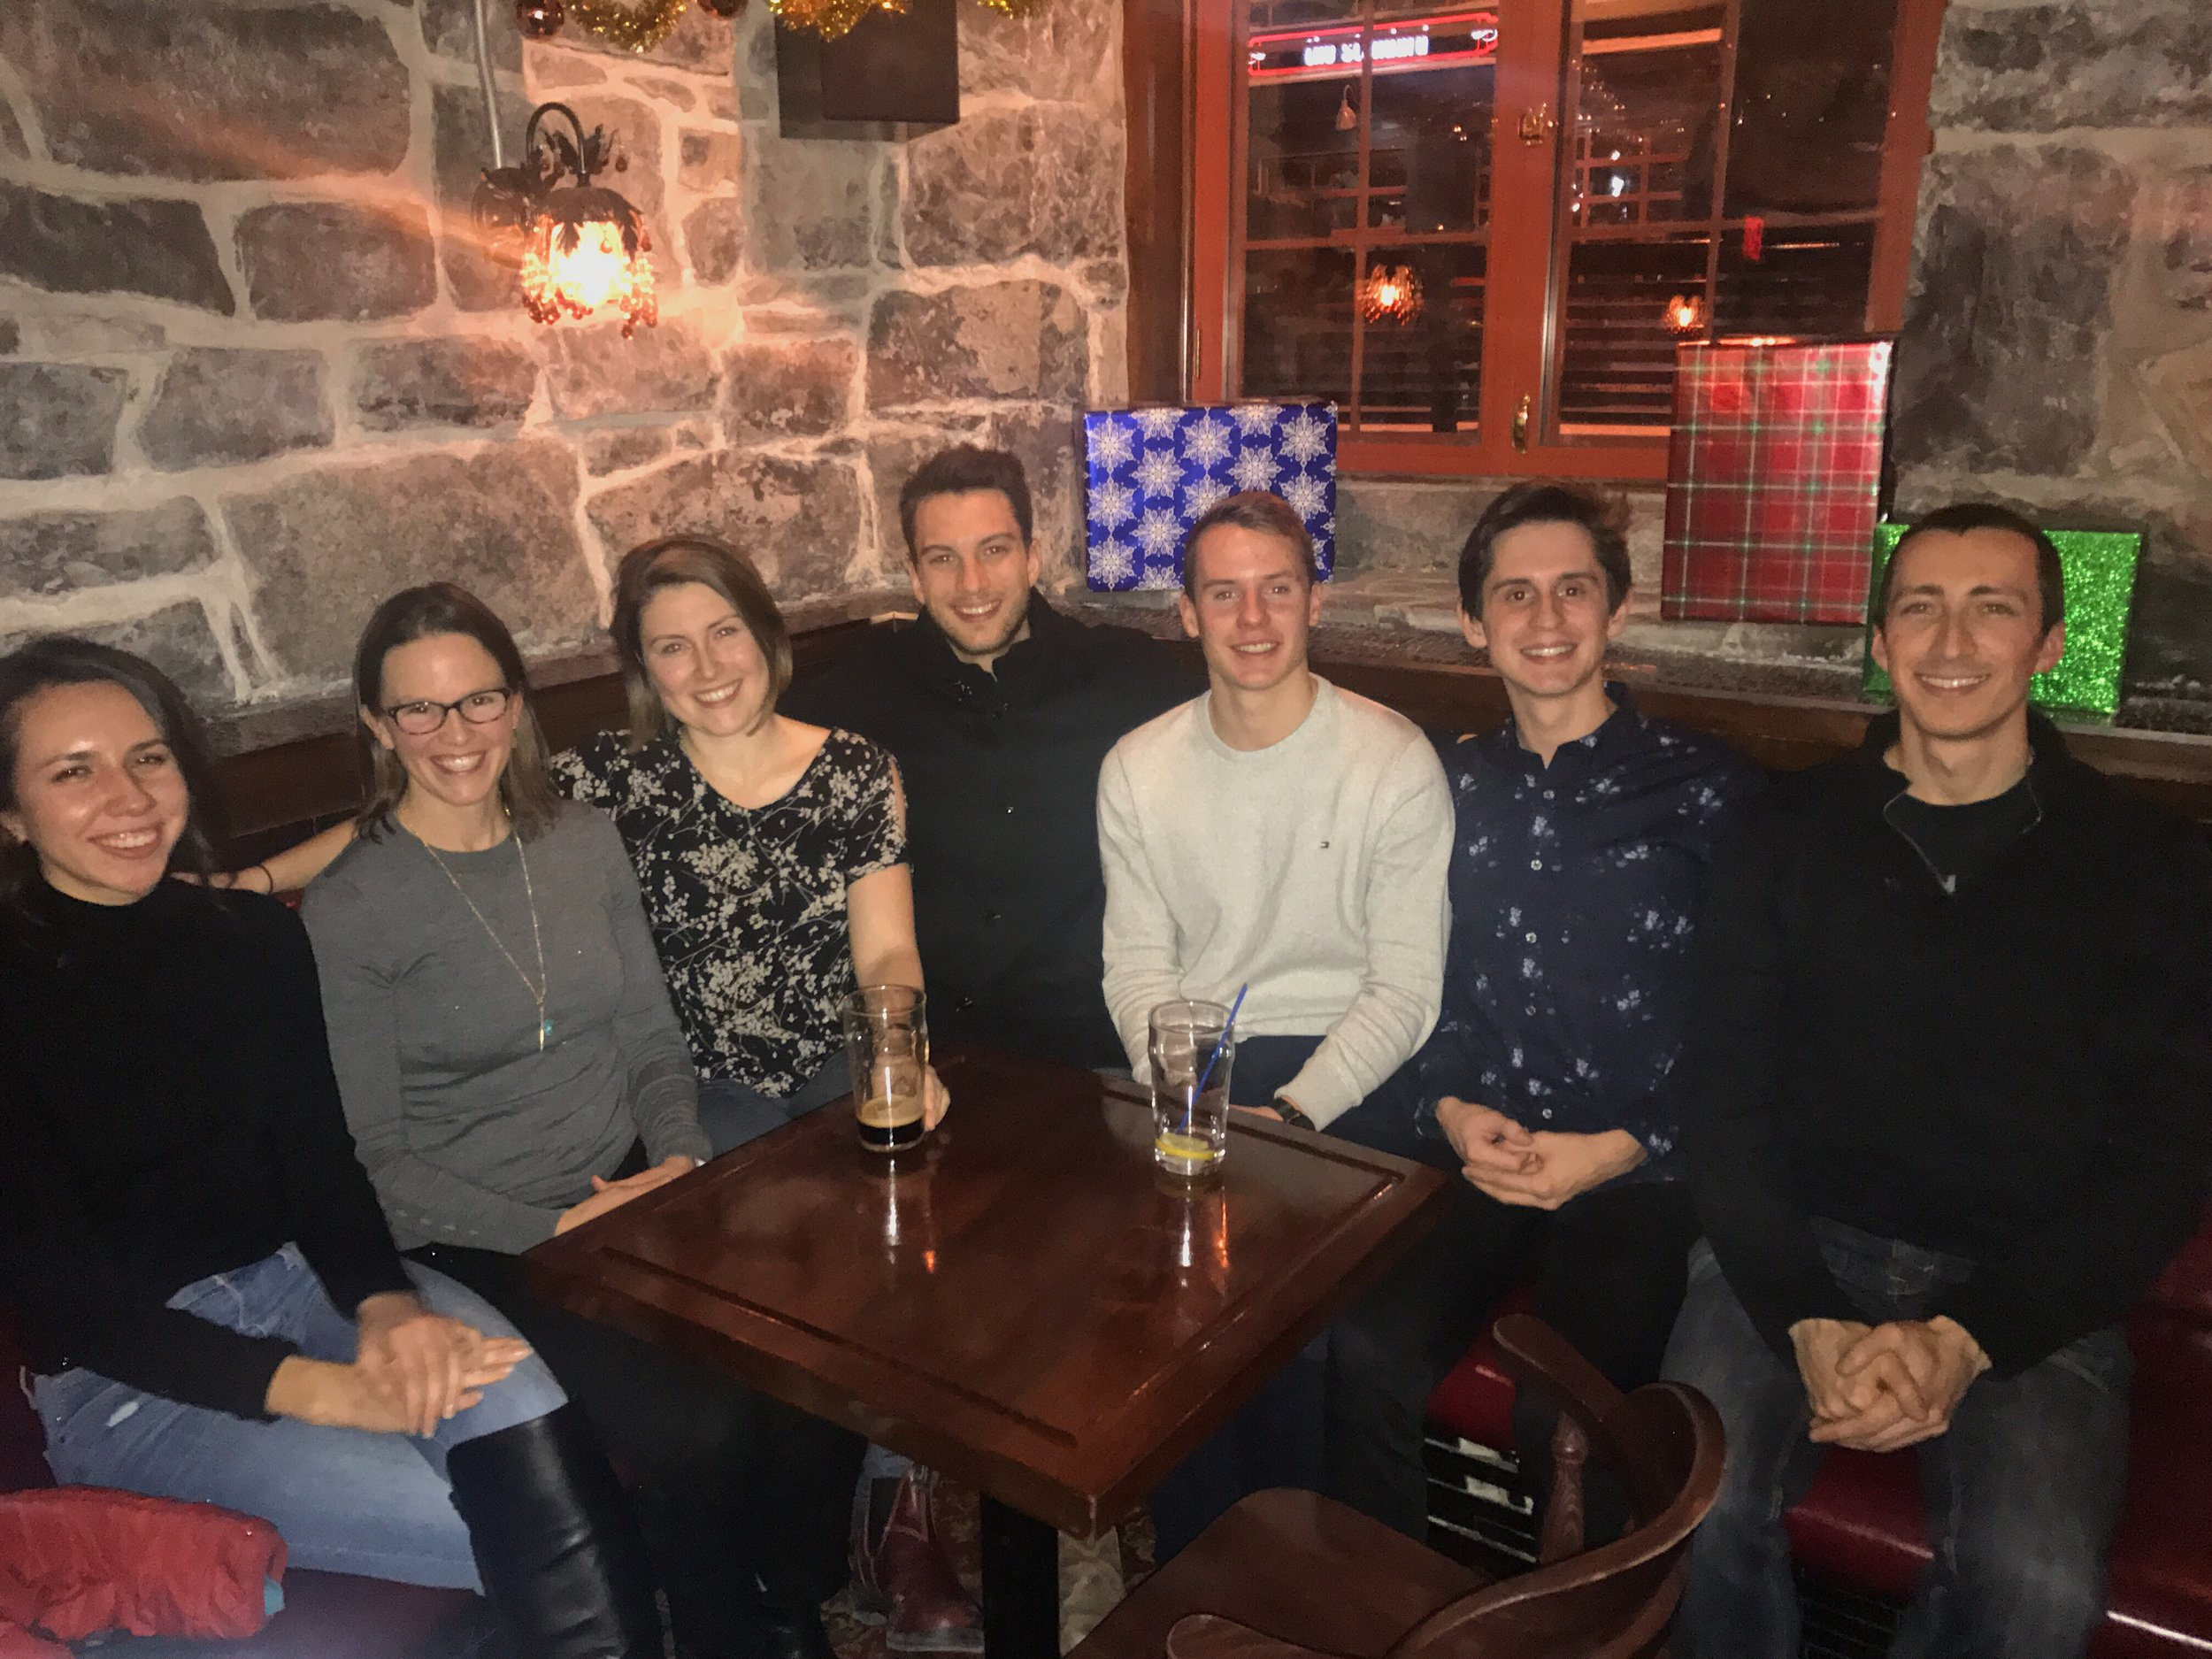 December 2017. Left to Right: Rebecca, Alison, Amanda, Nik, Kevin, Keith, and Mark